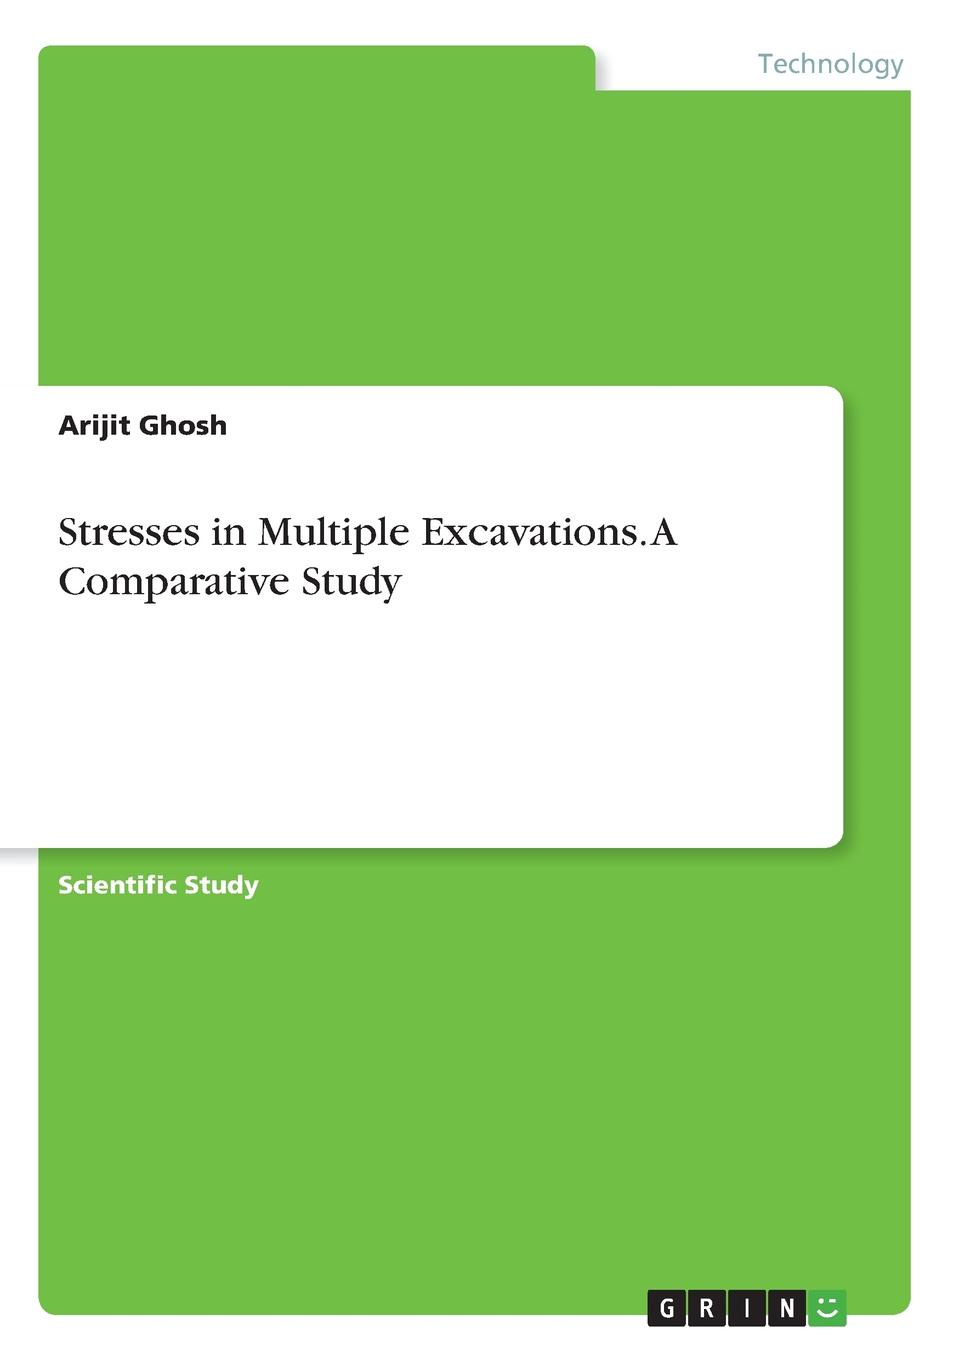 Arijit Ghosh Stresses in Multiple Excavations. A Comparative Study the rock